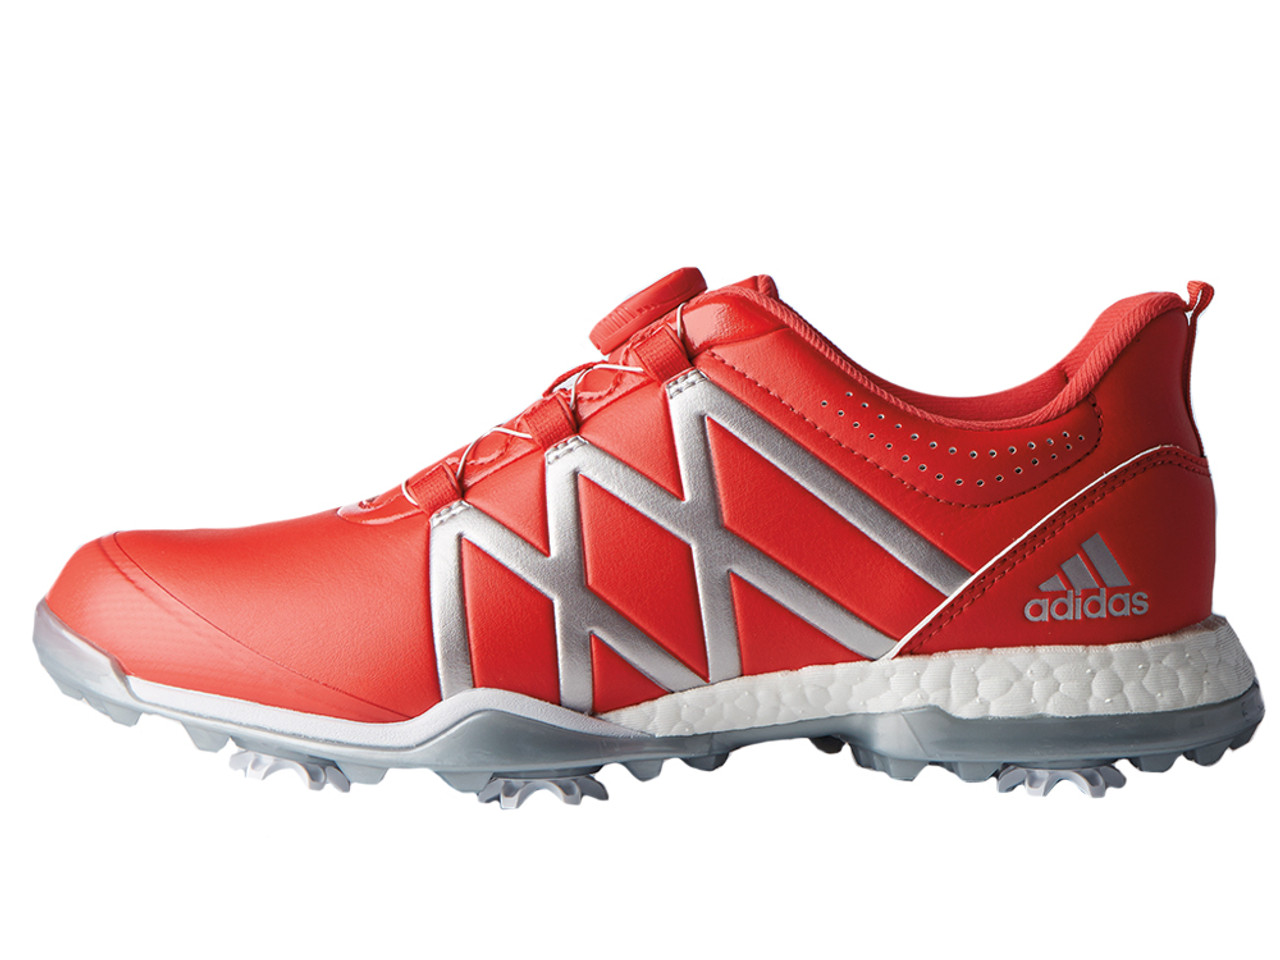 free shipping 12718 2c99d Adidas Adipower Boost BOA Ladies Golf Shoes - Coral Silver - Ladies For  Sale   GolfBox